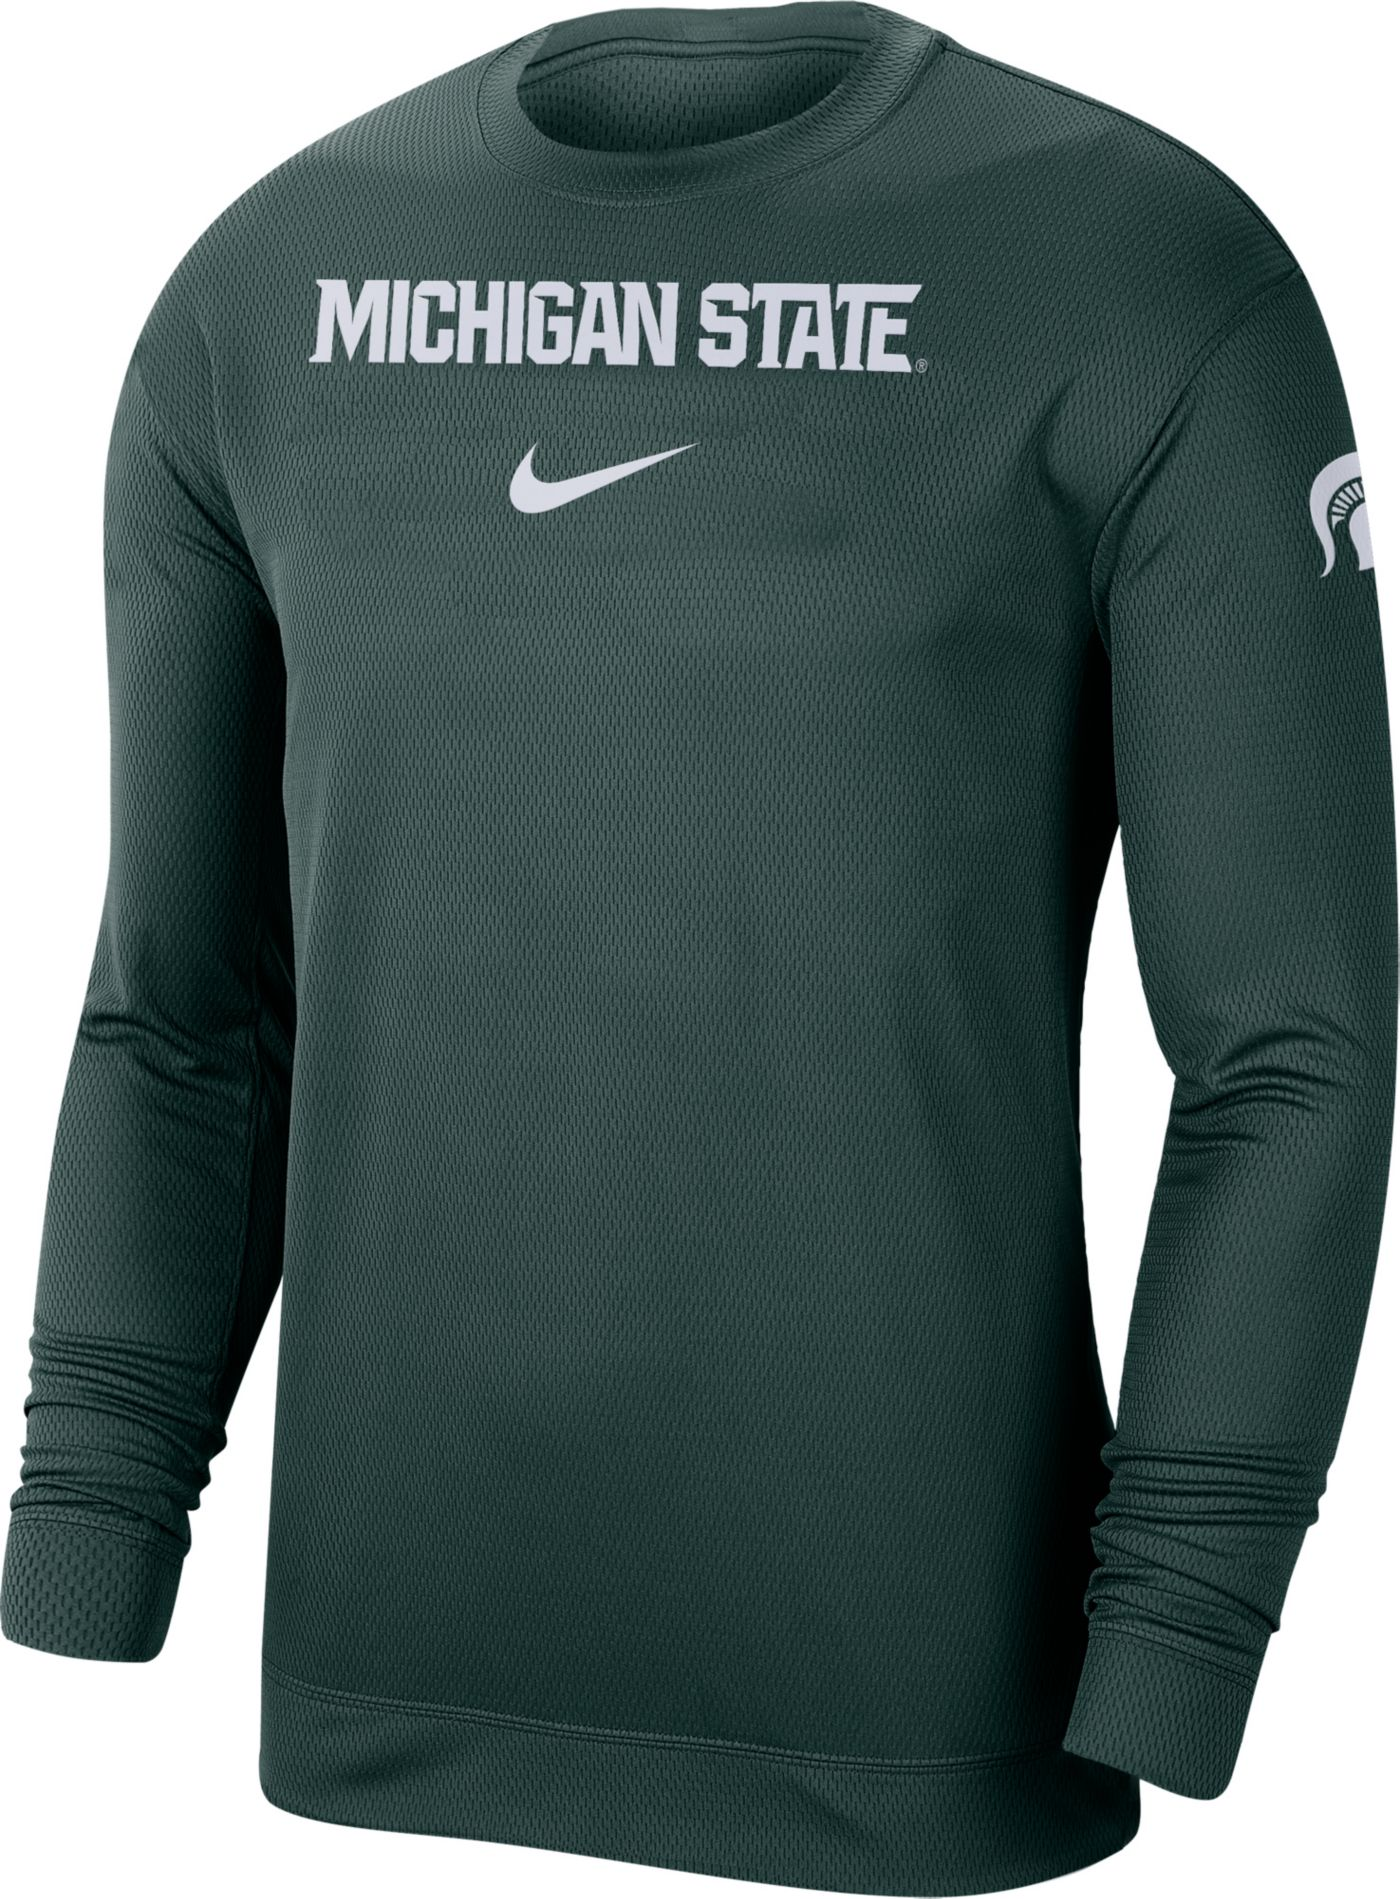 Nike Men's Michigan State Spartans Green Dri-FIT Spotlight Long Sleeve Basketball T-Shirt